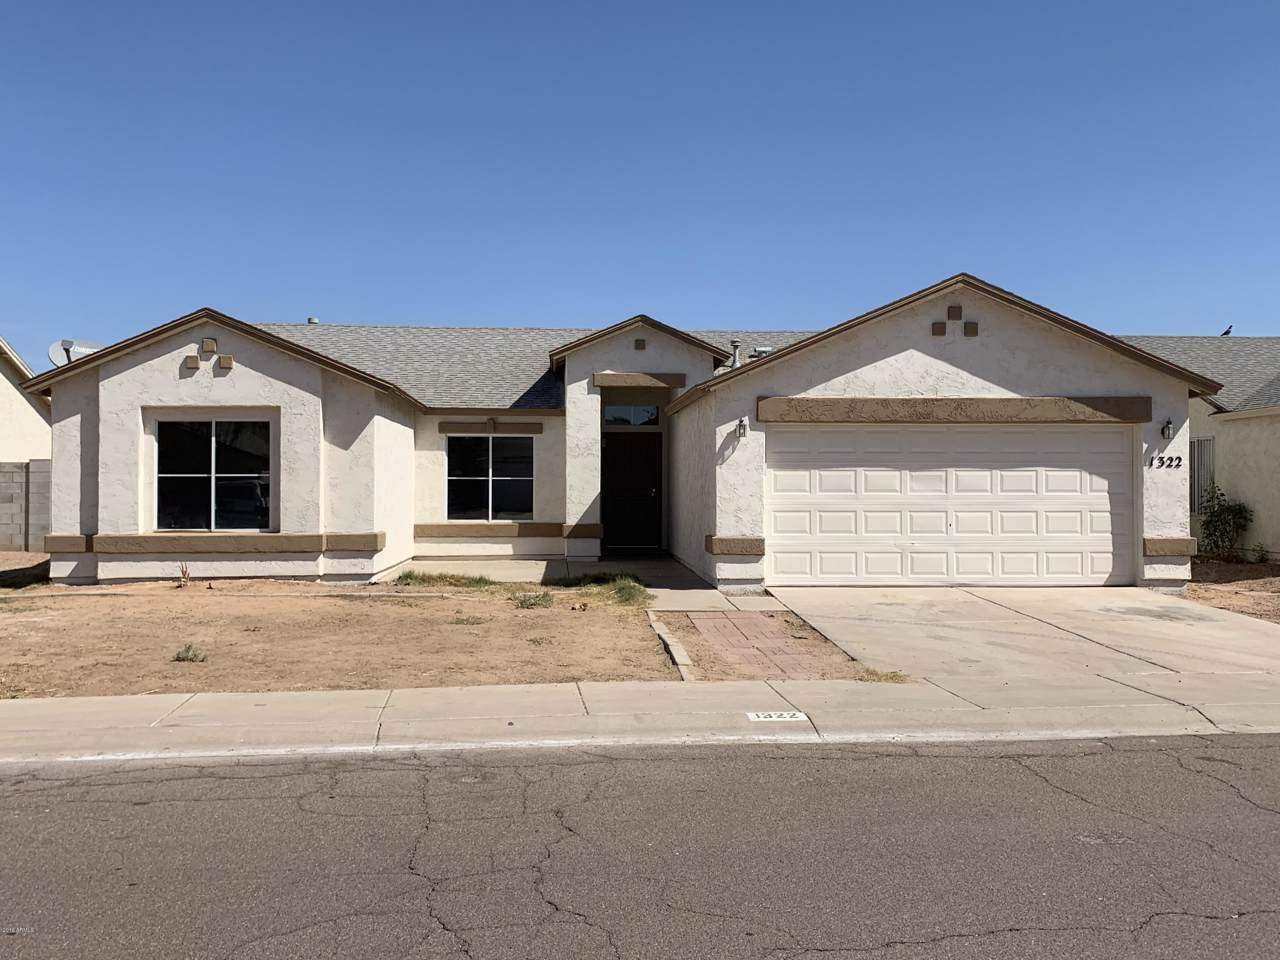 1322 Cactus Bloom Way - Photo 1